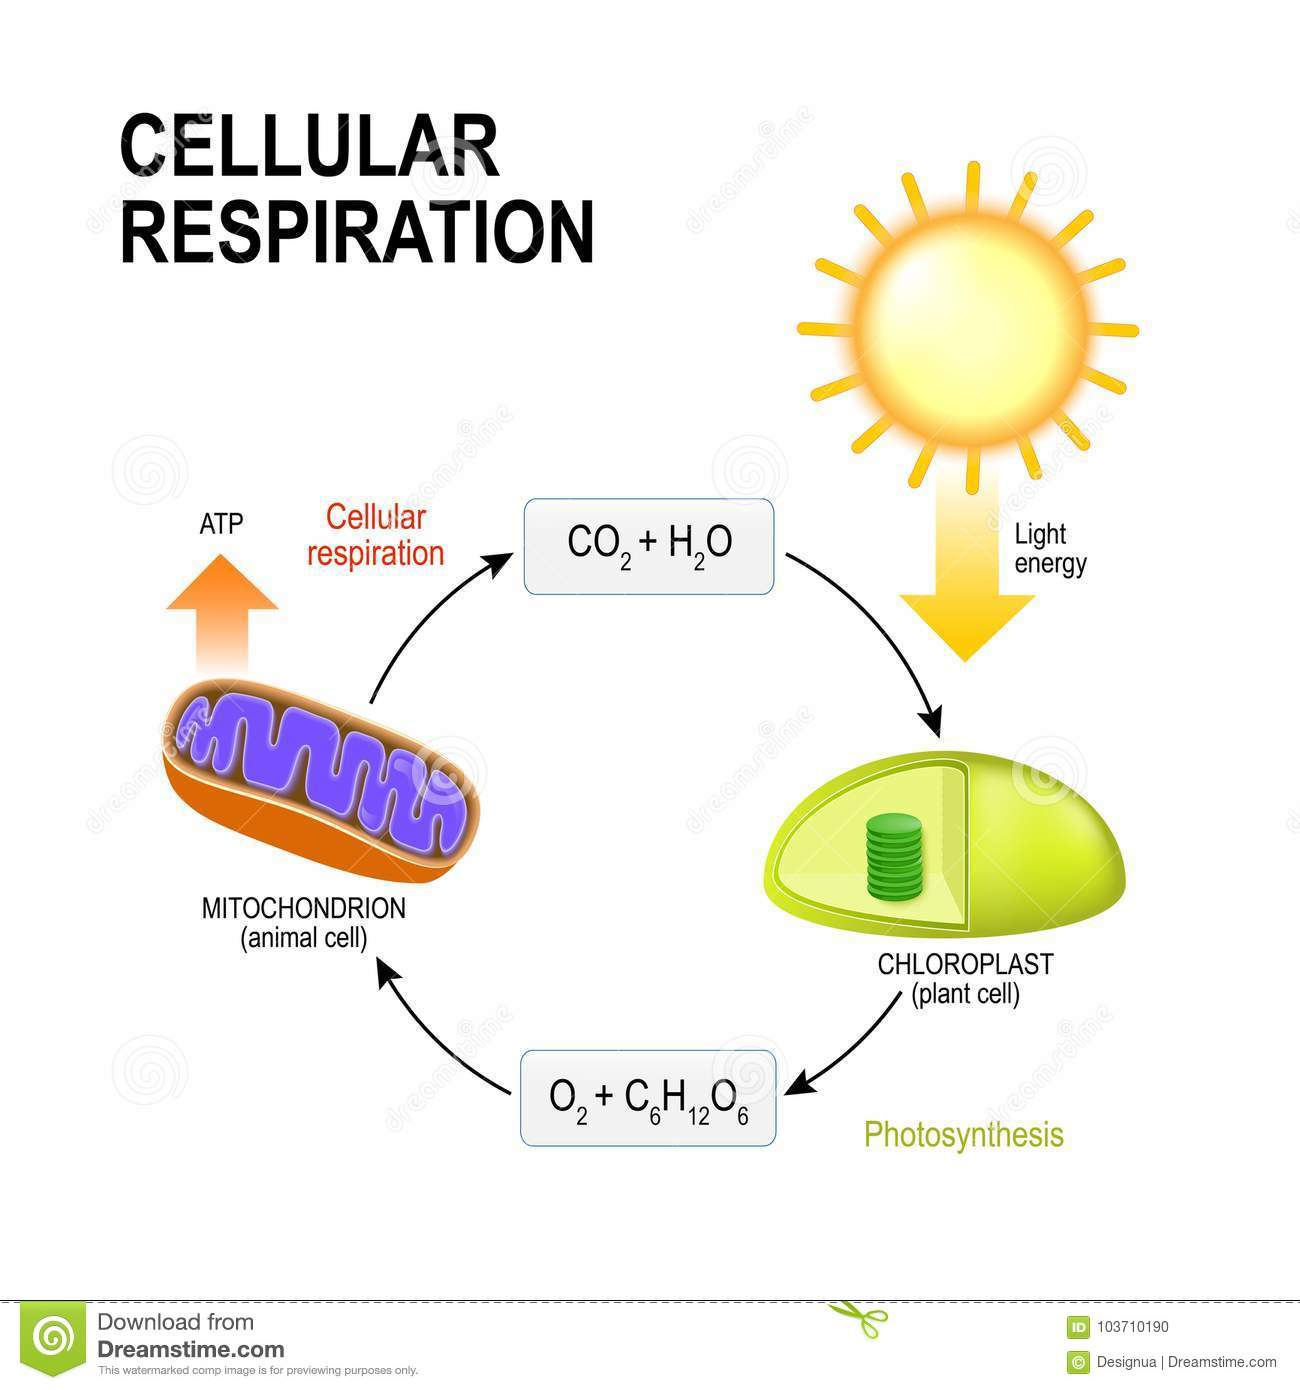 hight resolution of cellular respiration vector diagram presentation of the processes of aerobic cellular respiration connecting cellular respiration and photosynthesis